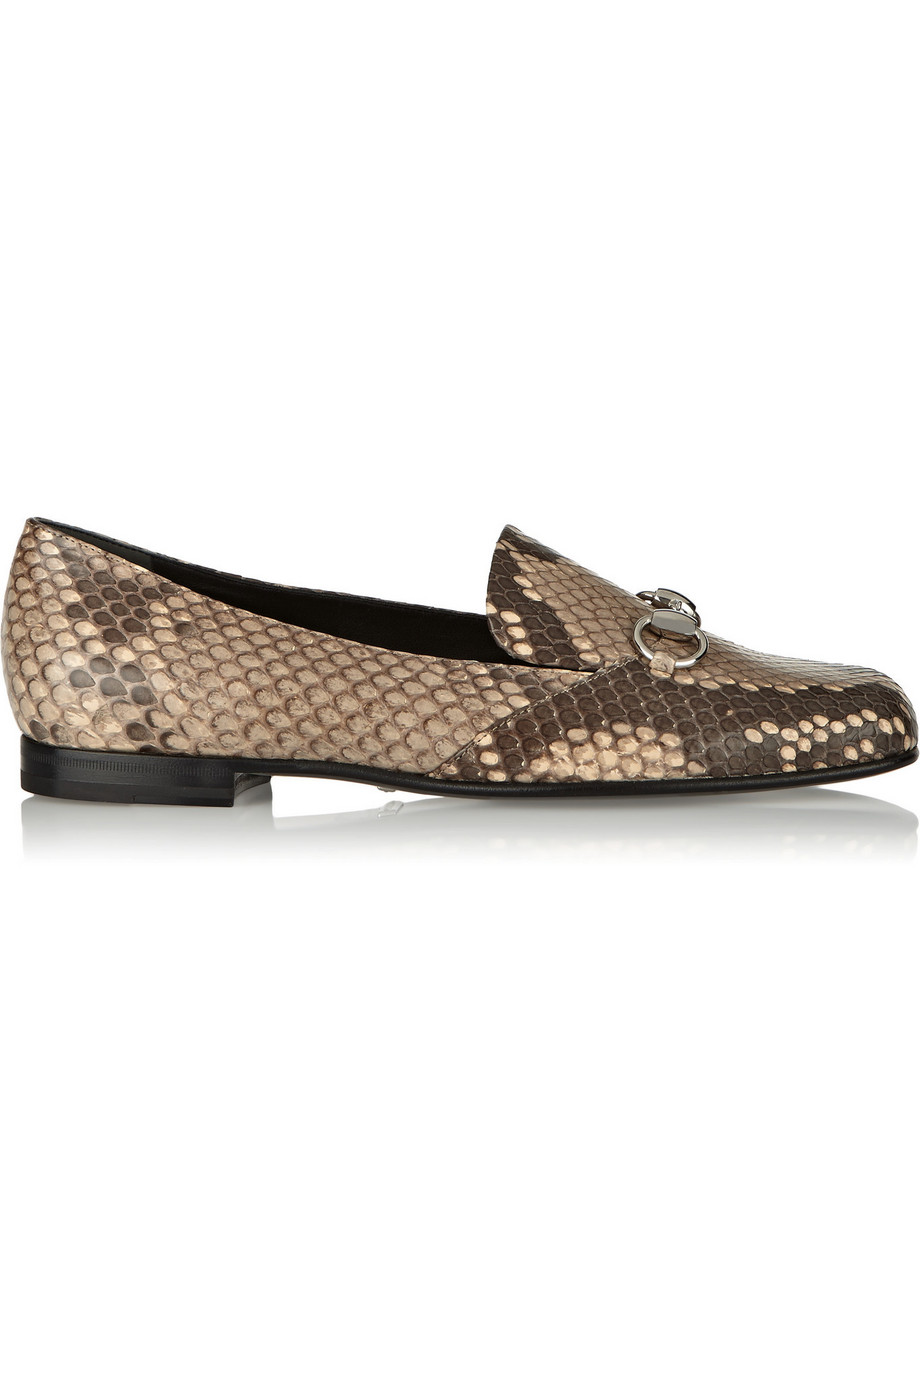 Gucci Horsebit-Detailed Python Loafers, Snake Print, Women's US Size: 6.5, Size: 37